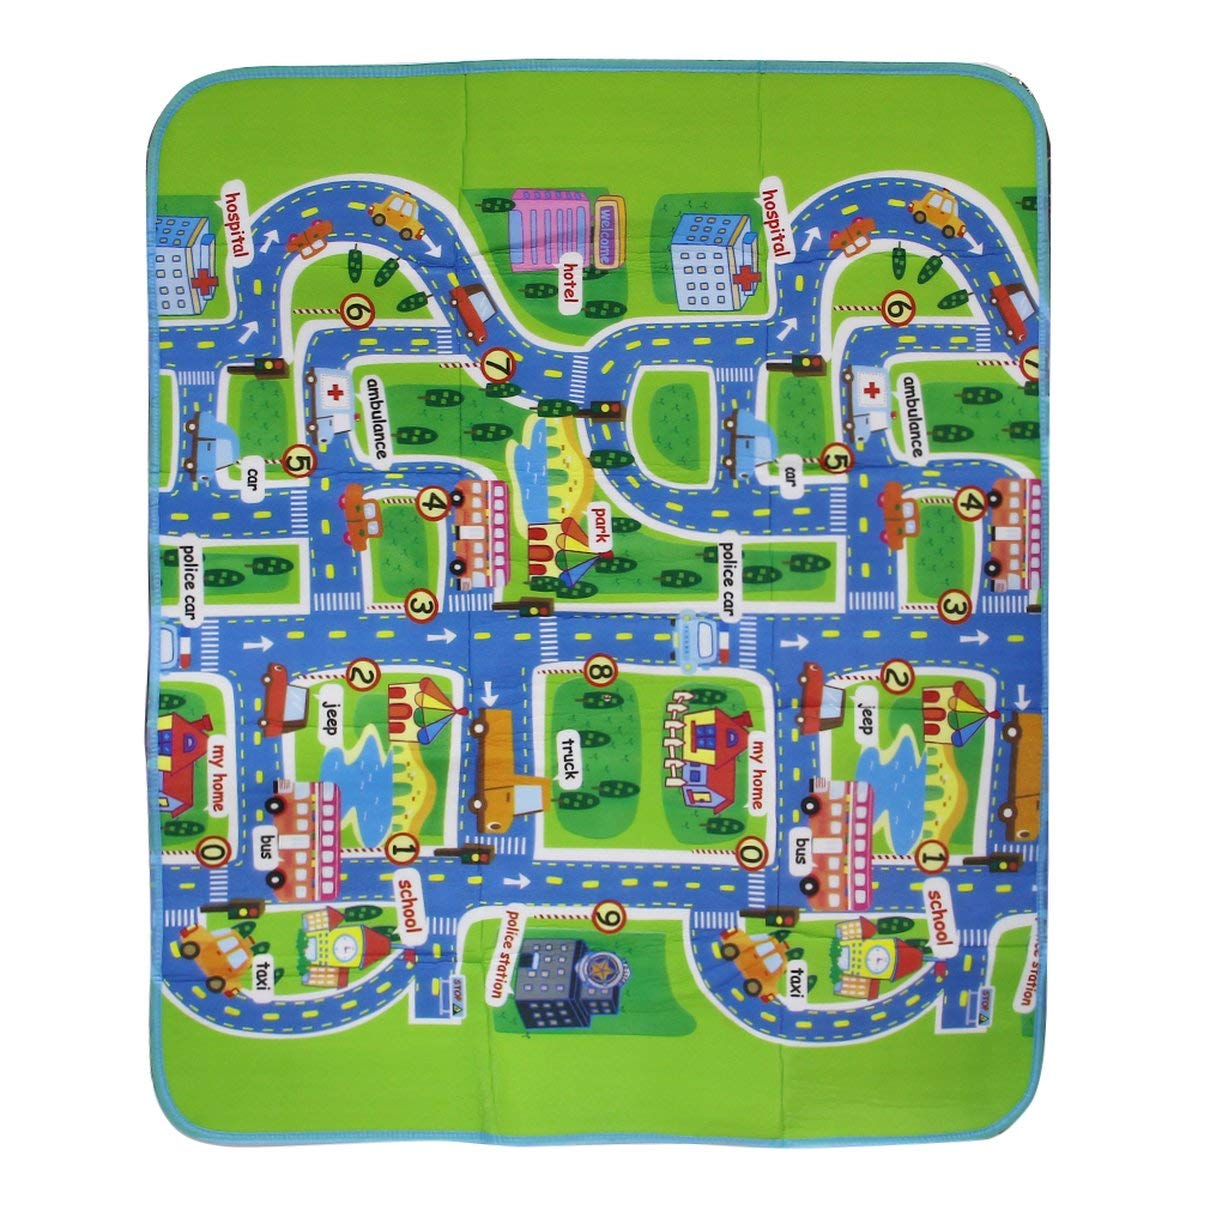 Multi-Color Flexible and Soft Hygienic and Safe for Kid Play Toy Creeping Mat Children in Developing Carpet Baby in Foam Rug Huldaqueen